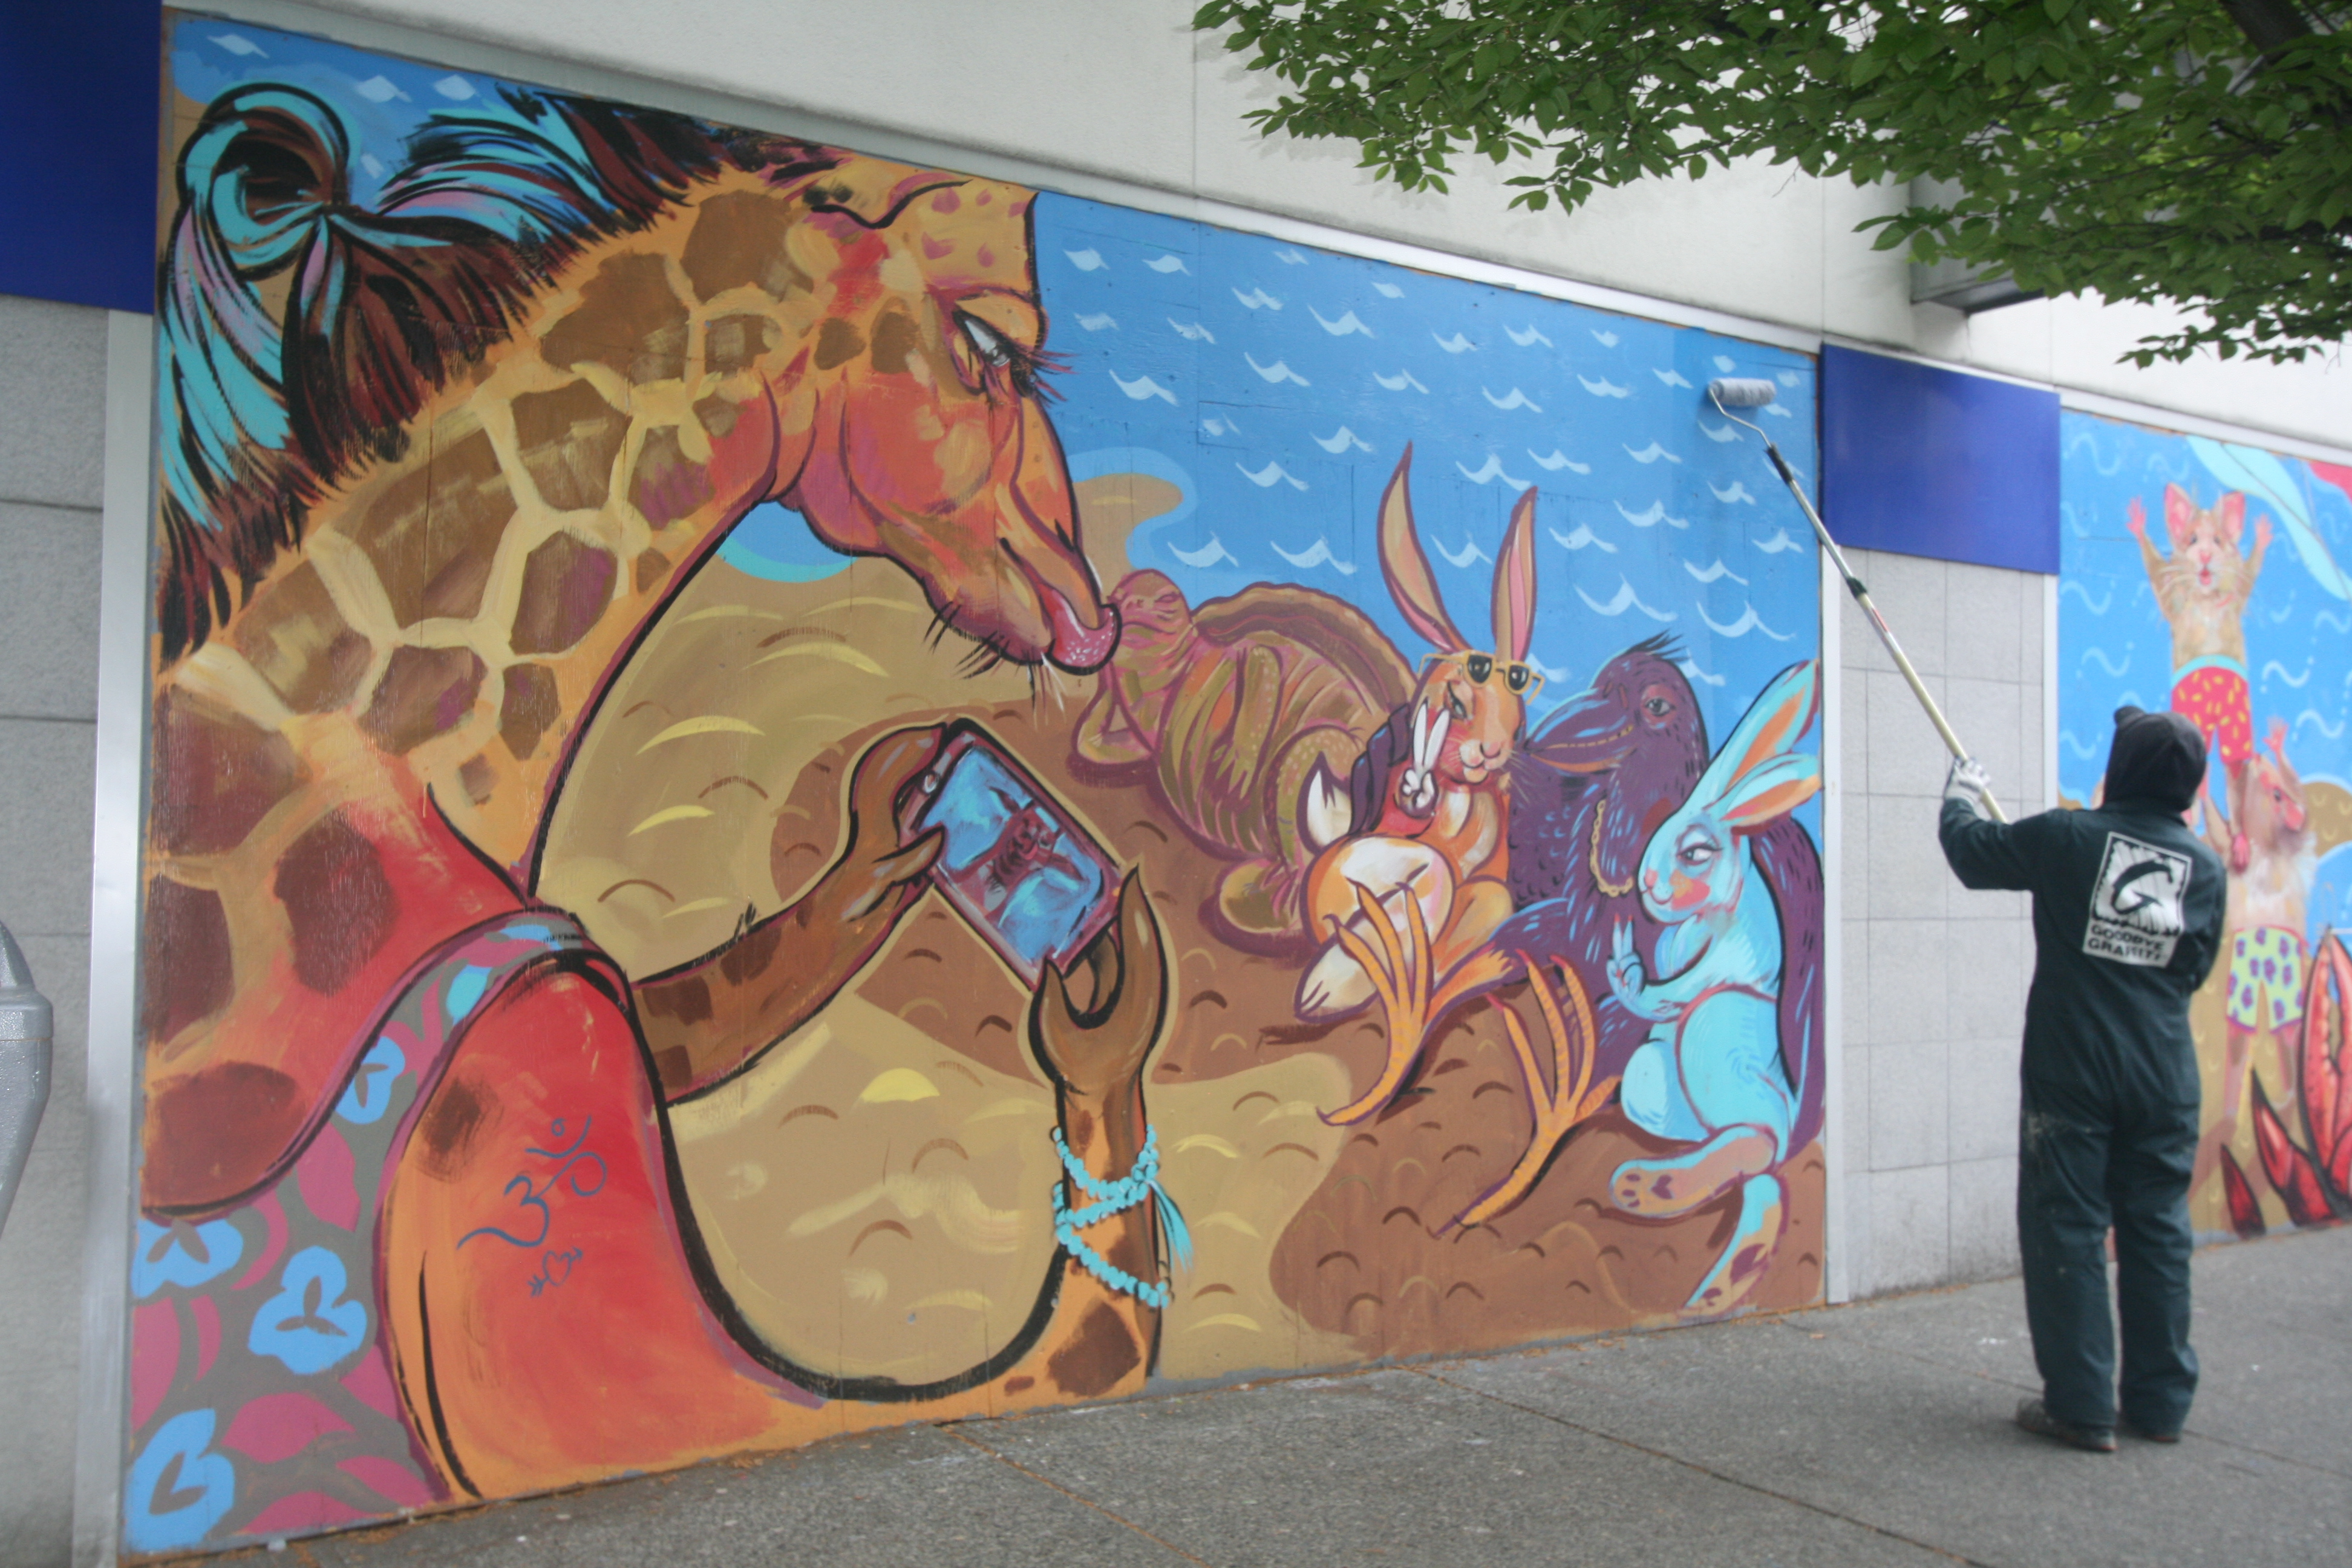 Thurlow-Street-Pandemic-Mural-Vancouver-2019-8328-copyright-Shelagh-Donnelly